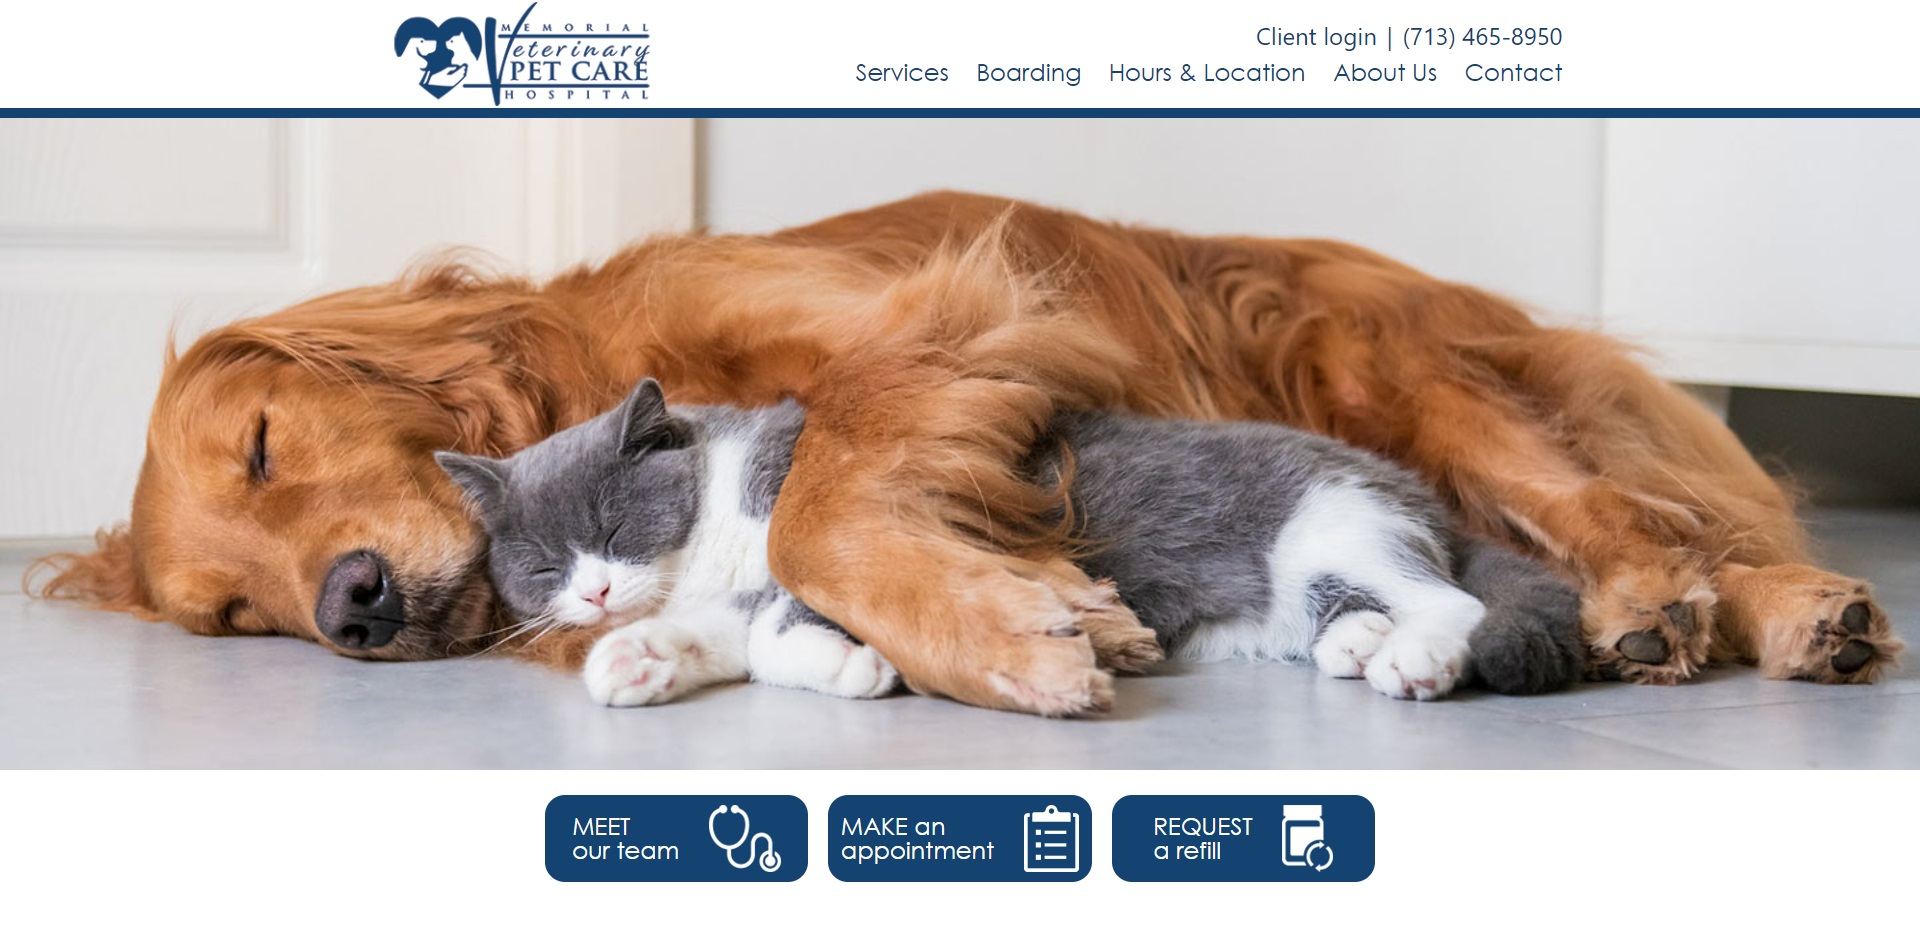 The Best Pet Care Centers in Houston, TX